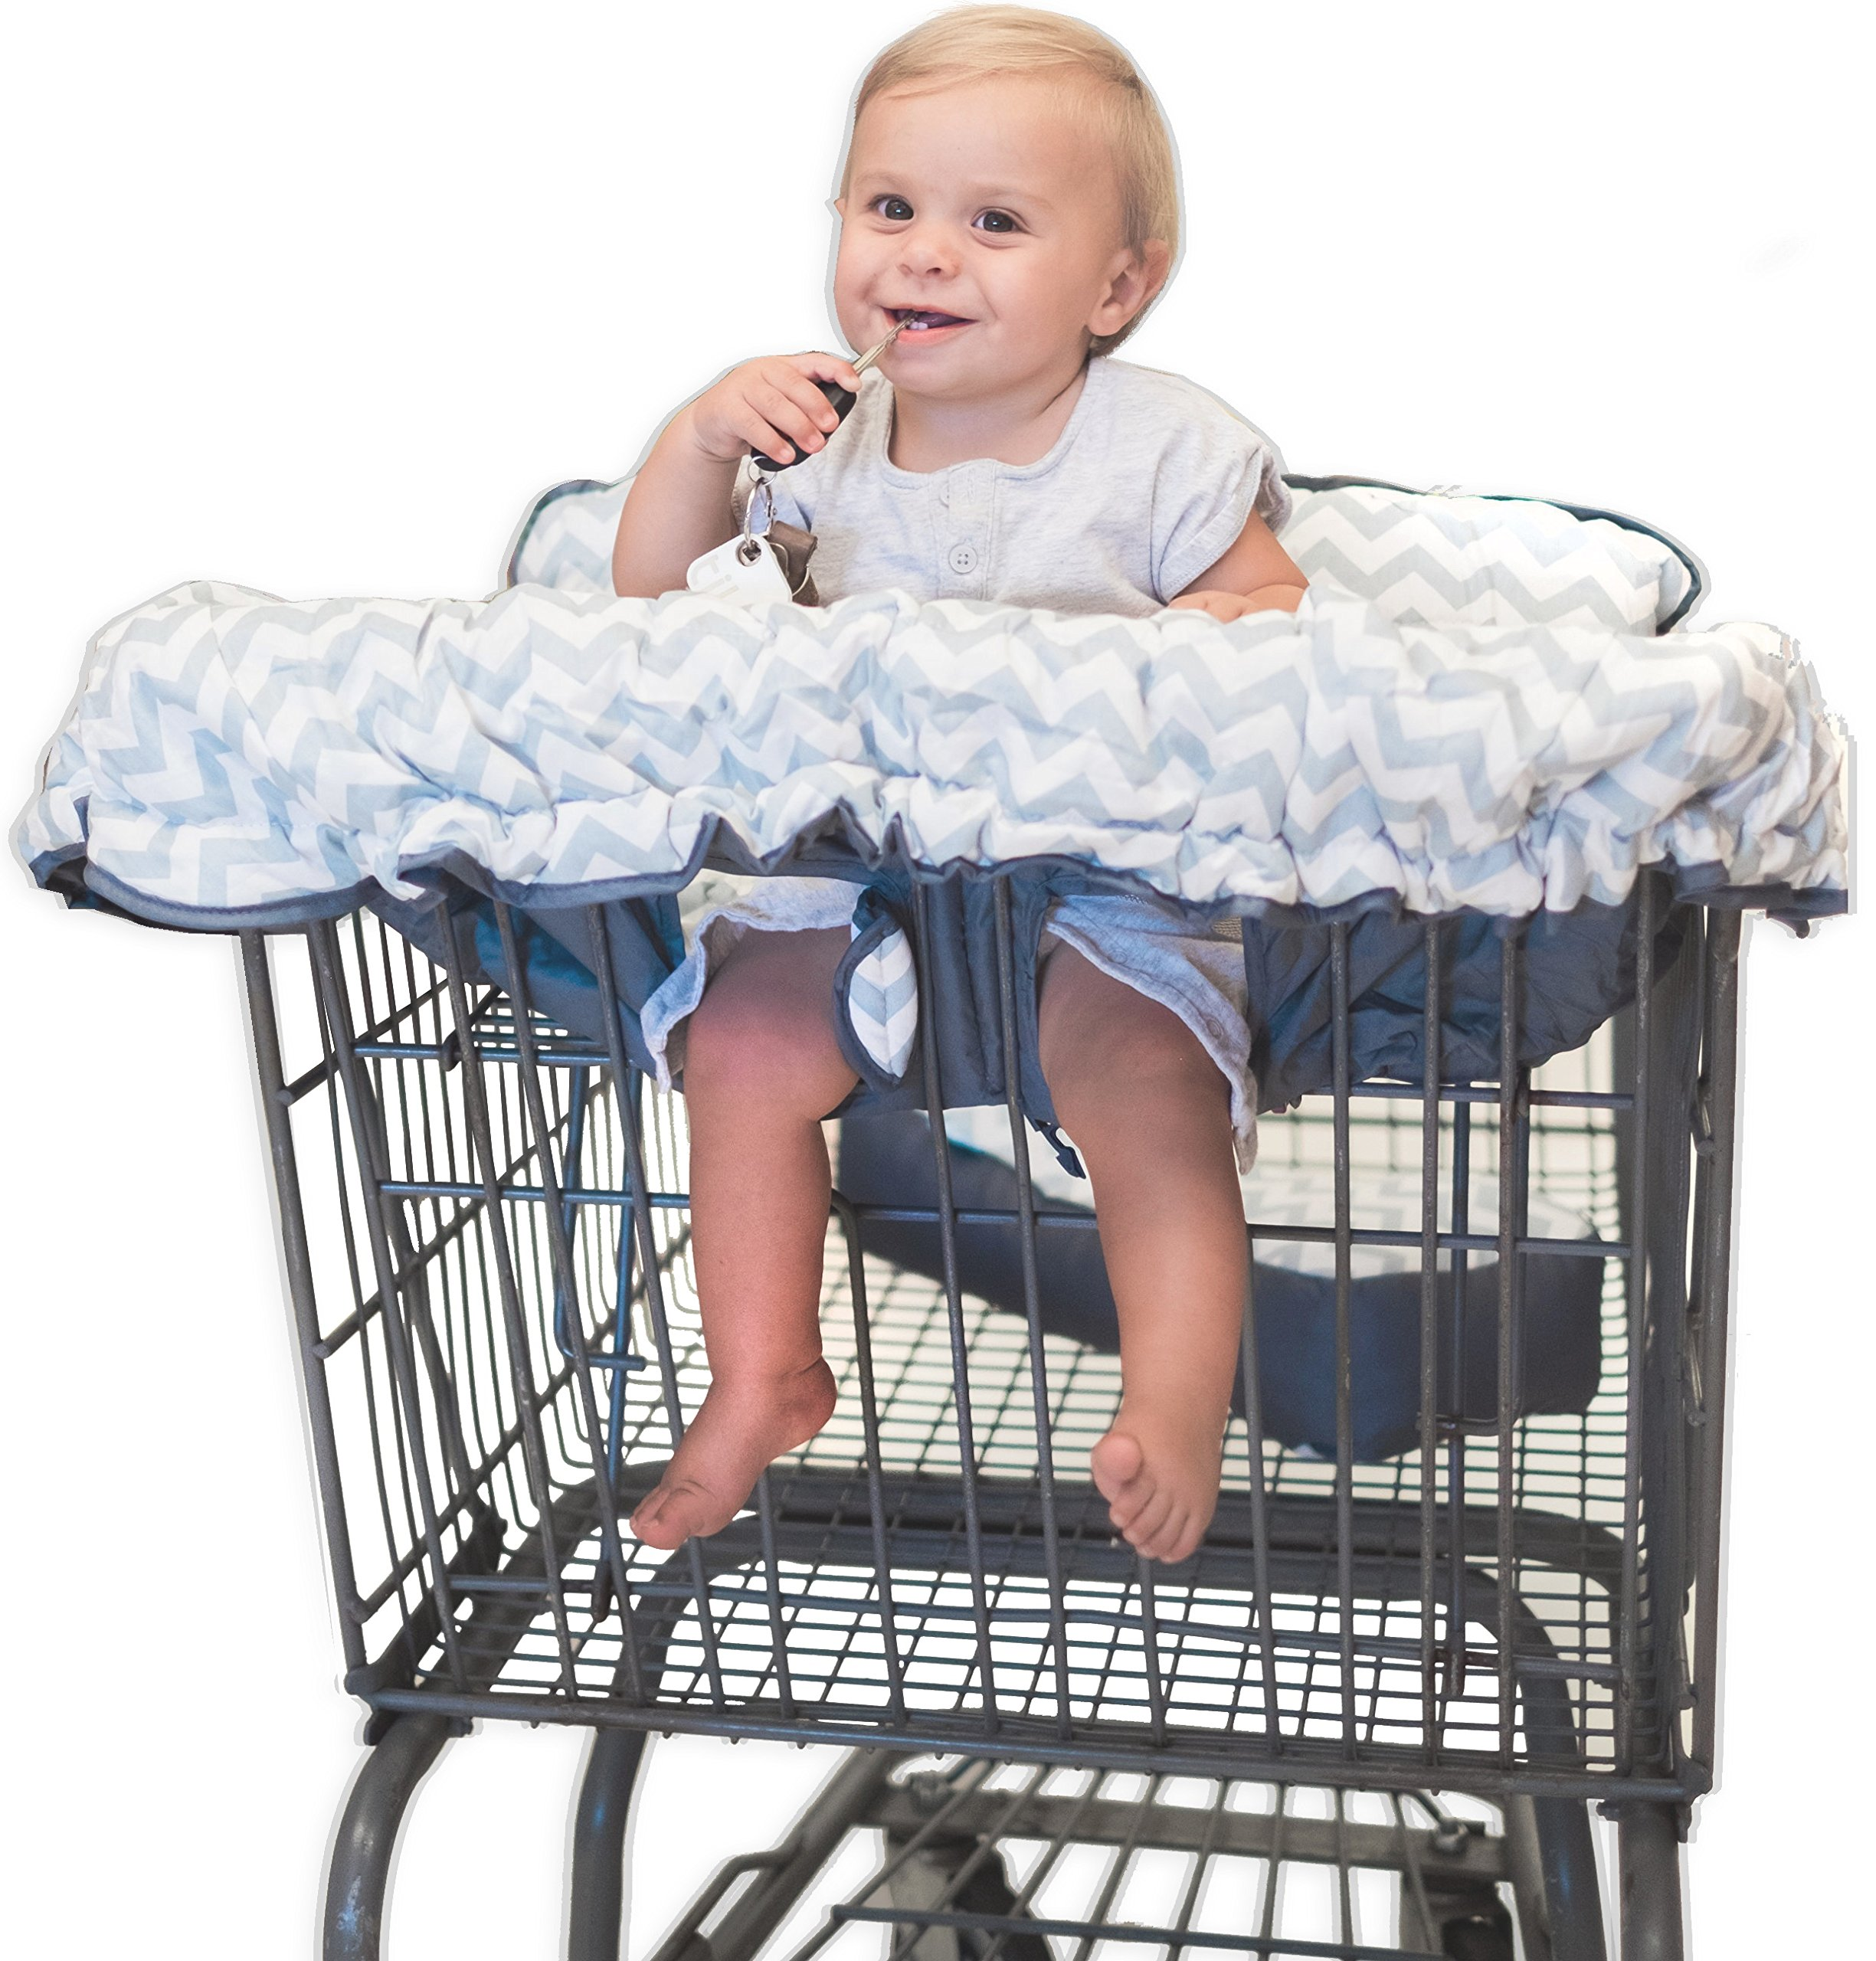 Premium 2-in-1 Cotton Shopping Cart Cover | High Chair Cover for Baby & Infant with Comfortable Pillow, Cell Phone Carrier, Teether, and Bonus Toy Straps - Summer Grocery Cart Cushion for Boy or Girl